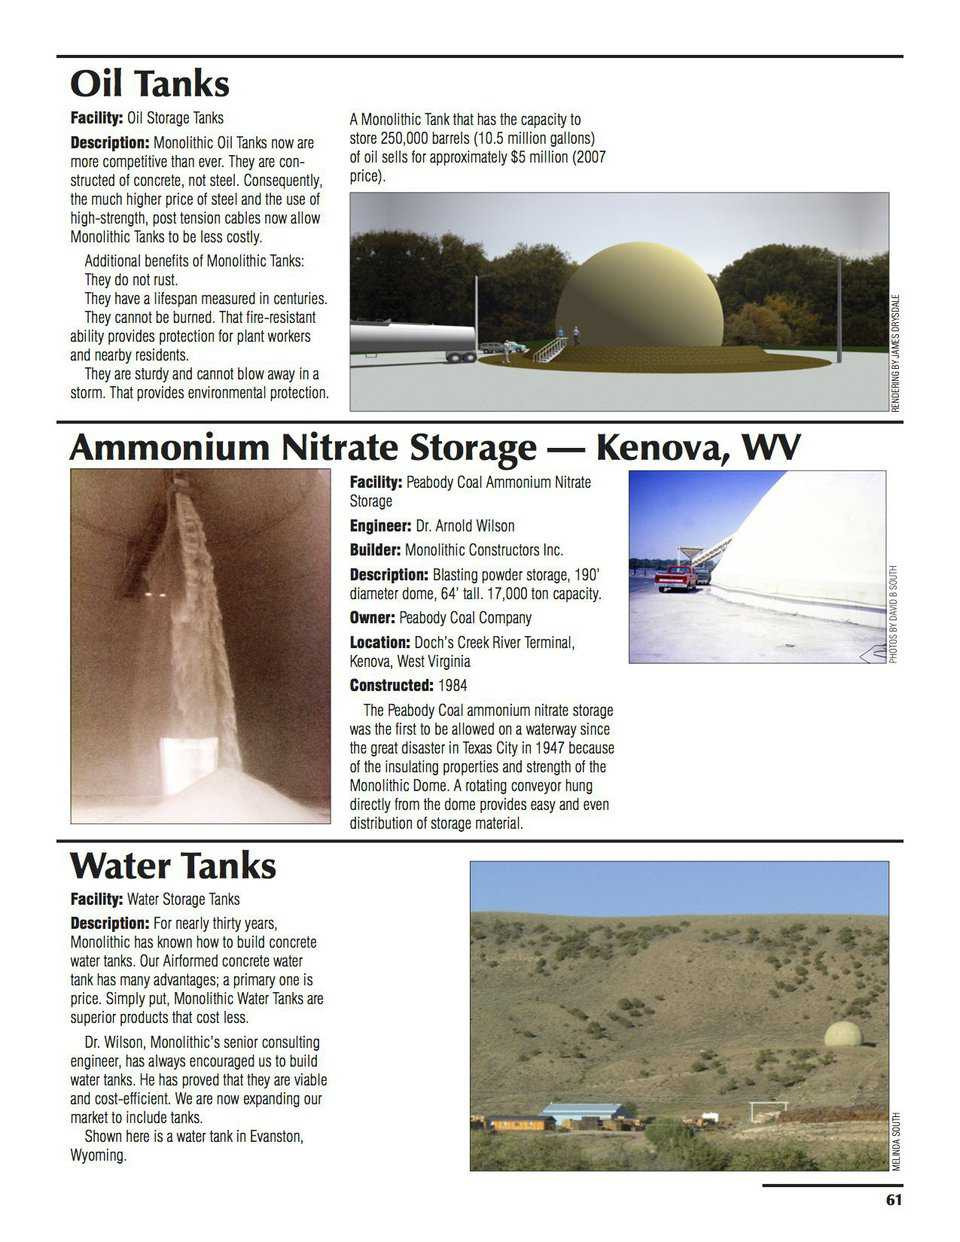 Sample pages – Oil Tanks